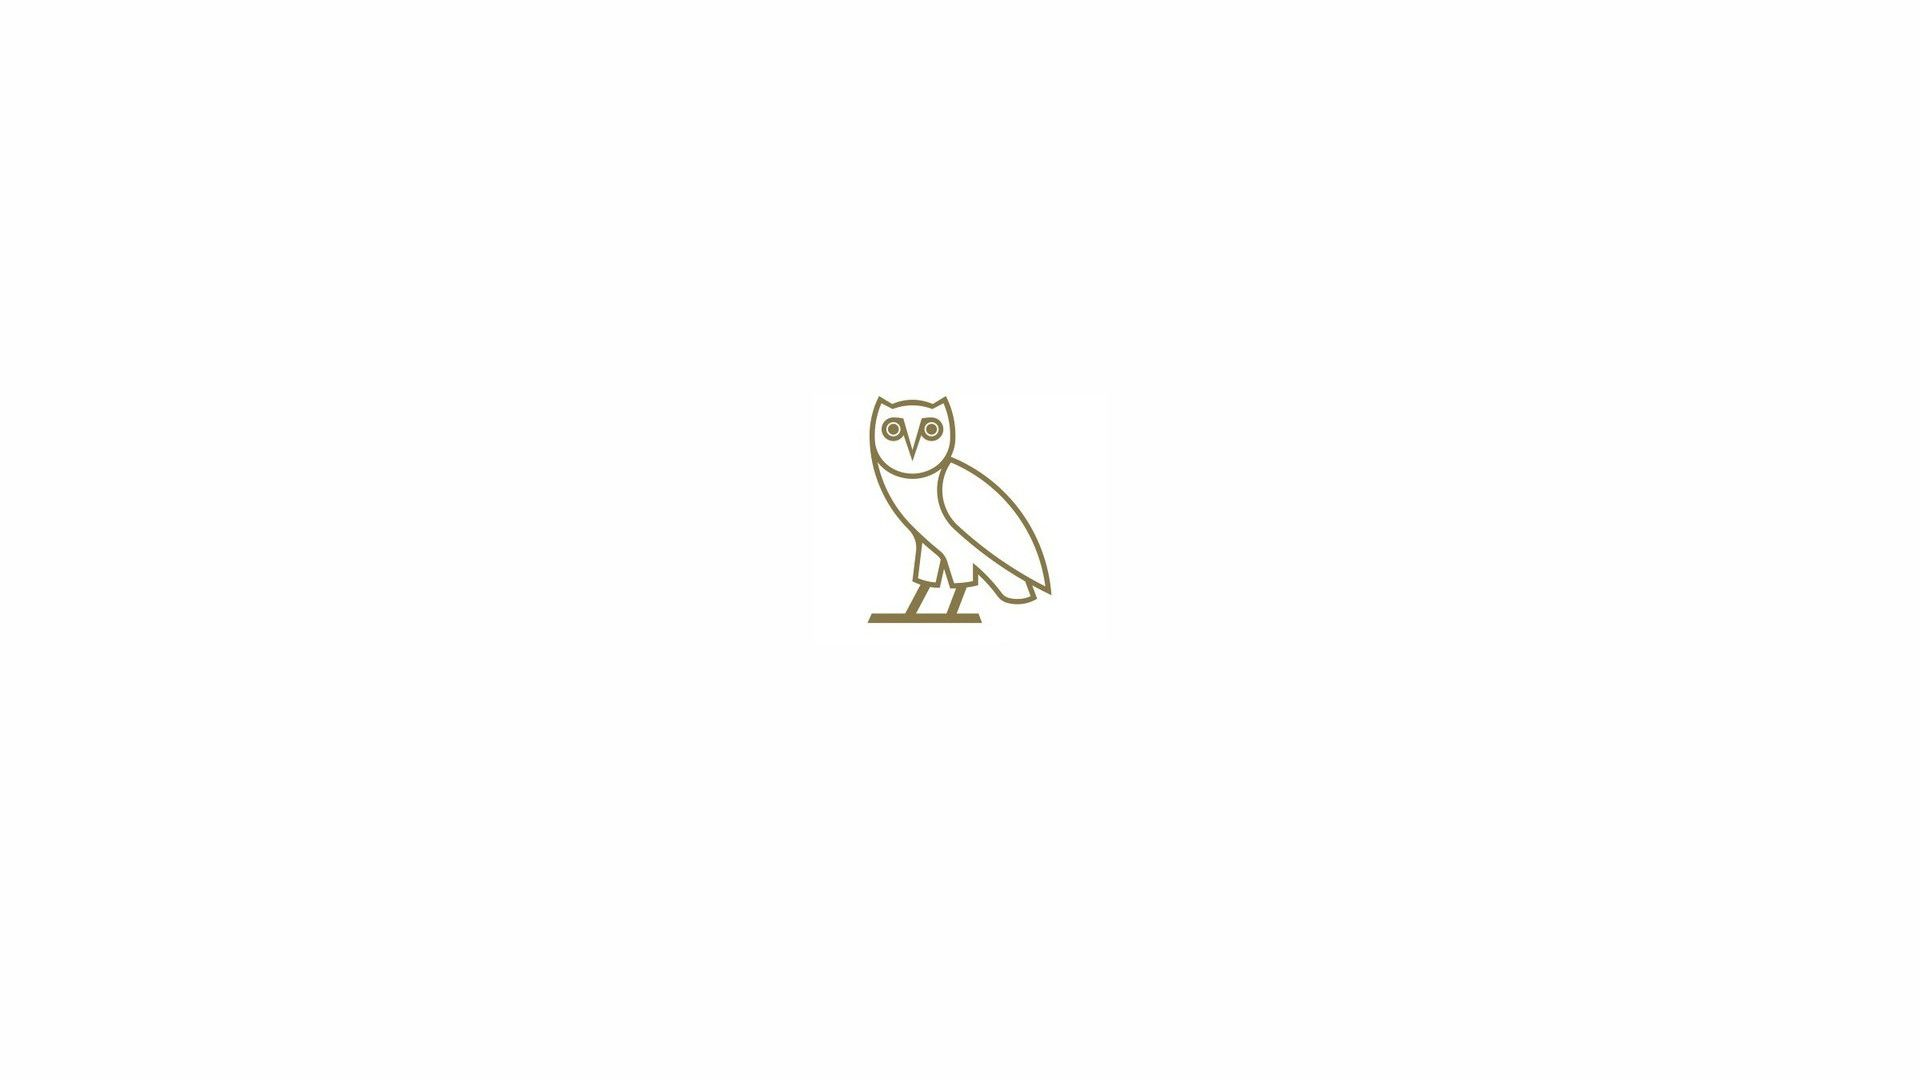 1920x1080 Ovo Wallpaper IPhone HD 77 Images